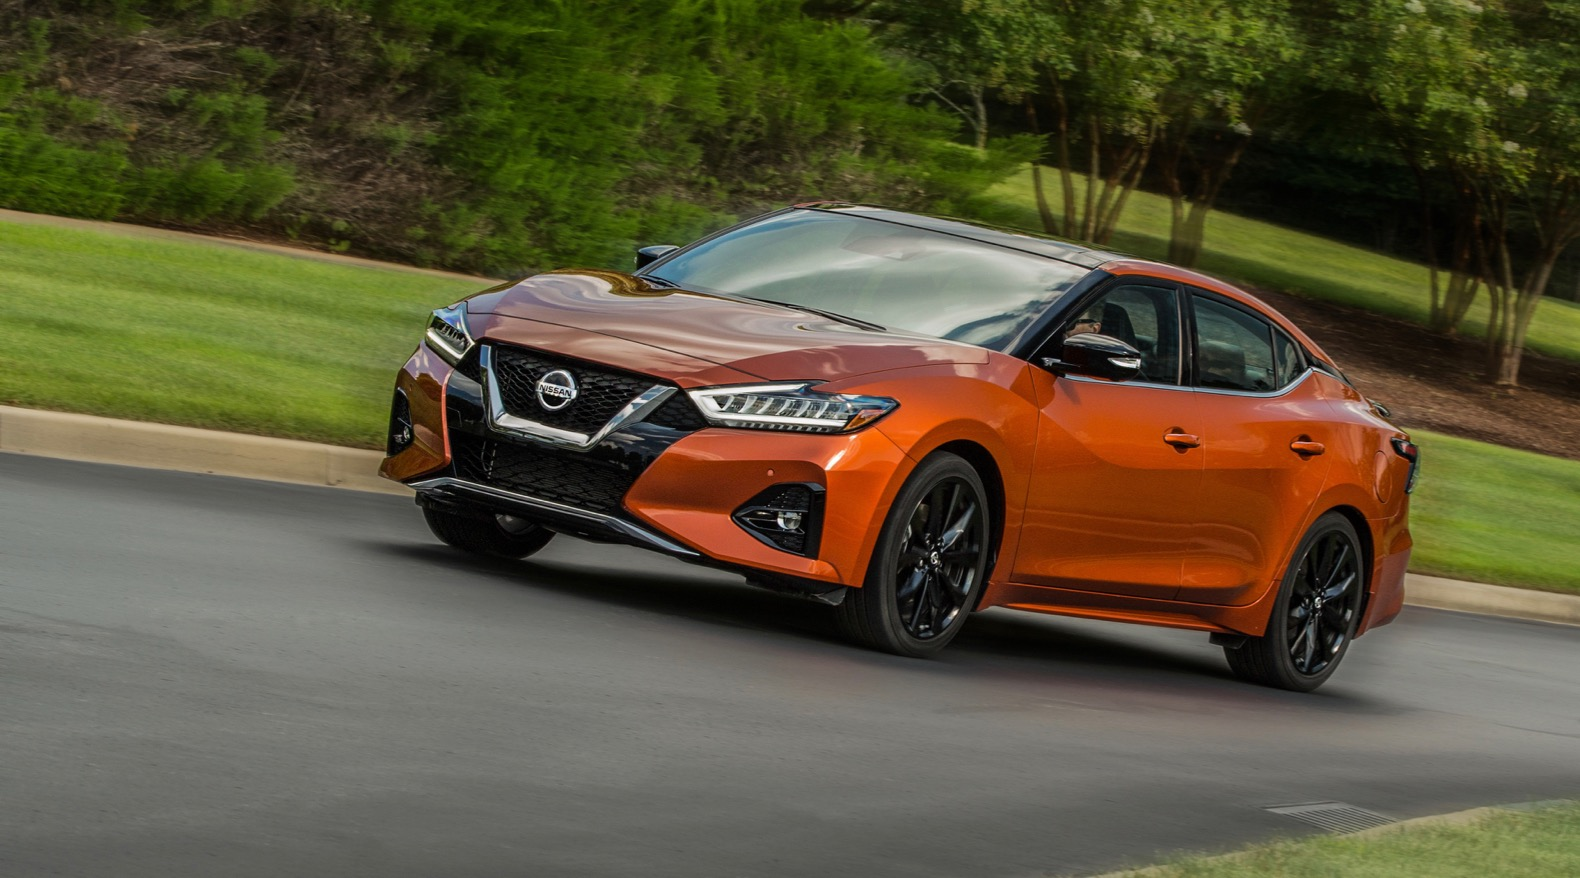 2020 Nissan Maxima starts at $35,145 | The Torque Report